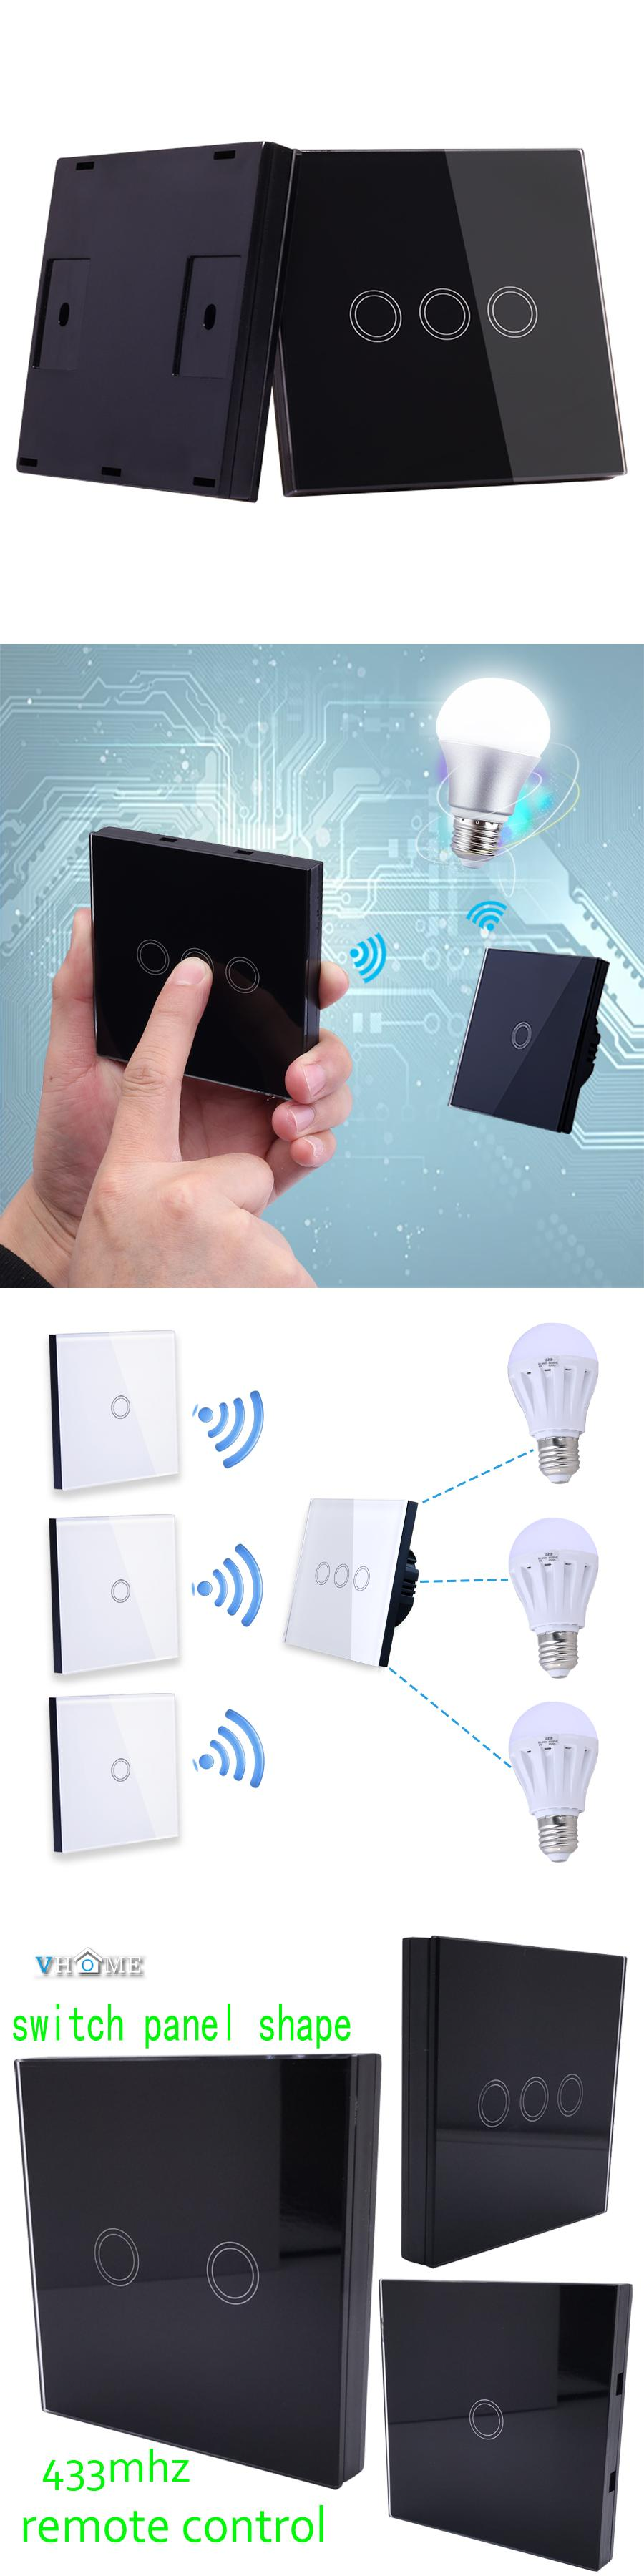 pin wireless computer silverstone technology reset dp usb remote switch light power com amazon rf accessories computers interface